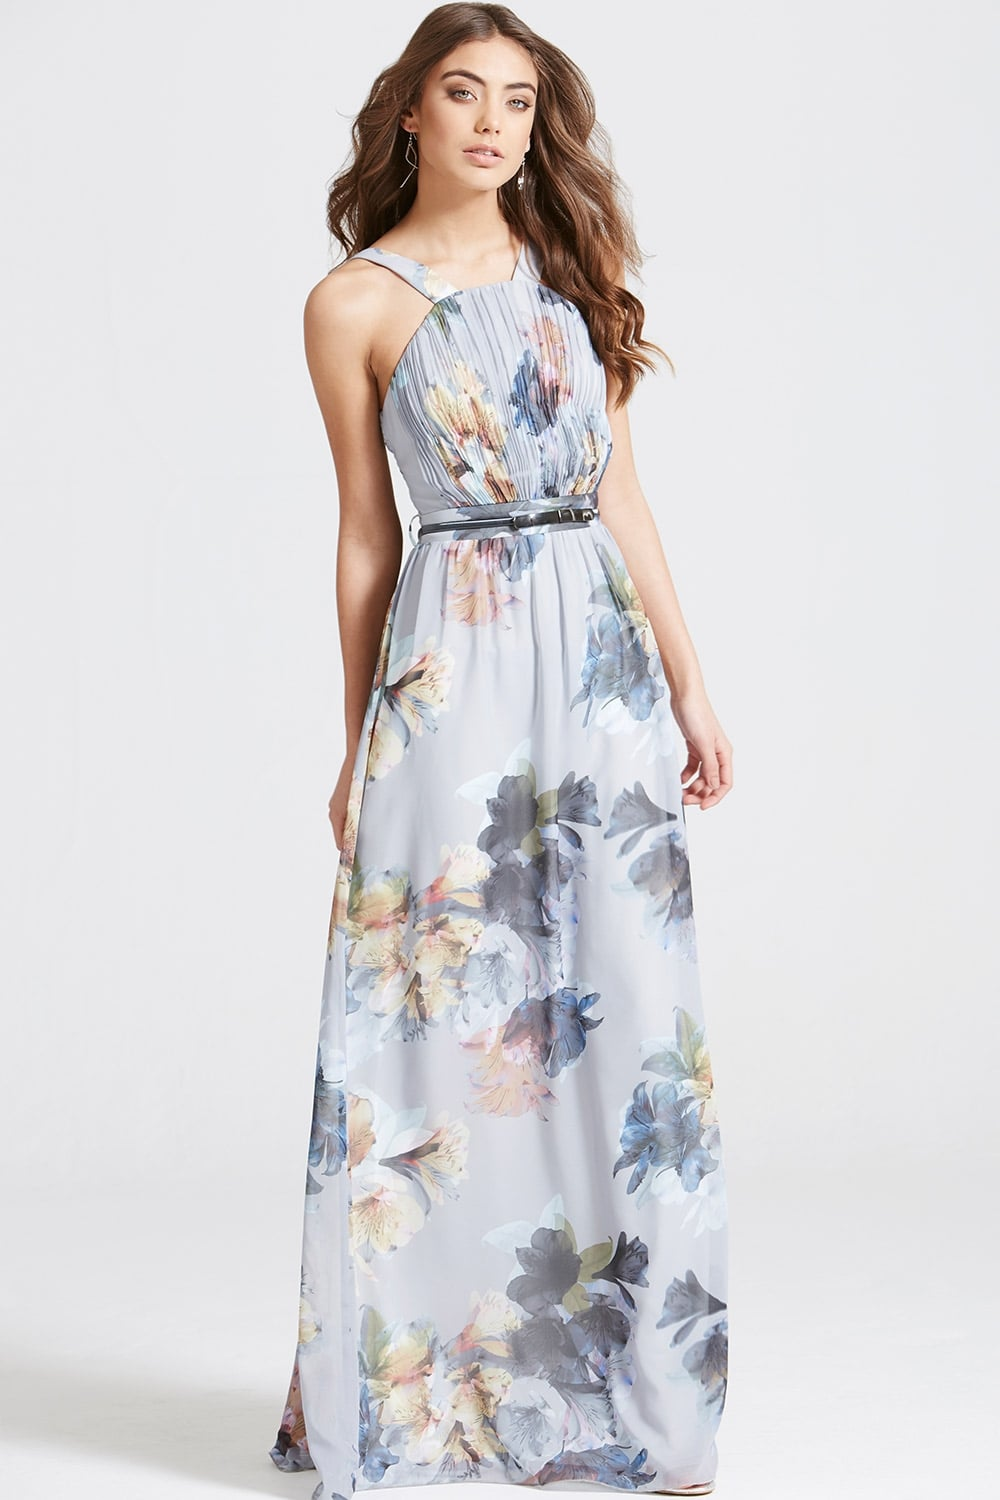 d5efb2fca Floral Print Occasion Maxi Dress - from Little Mistress UK